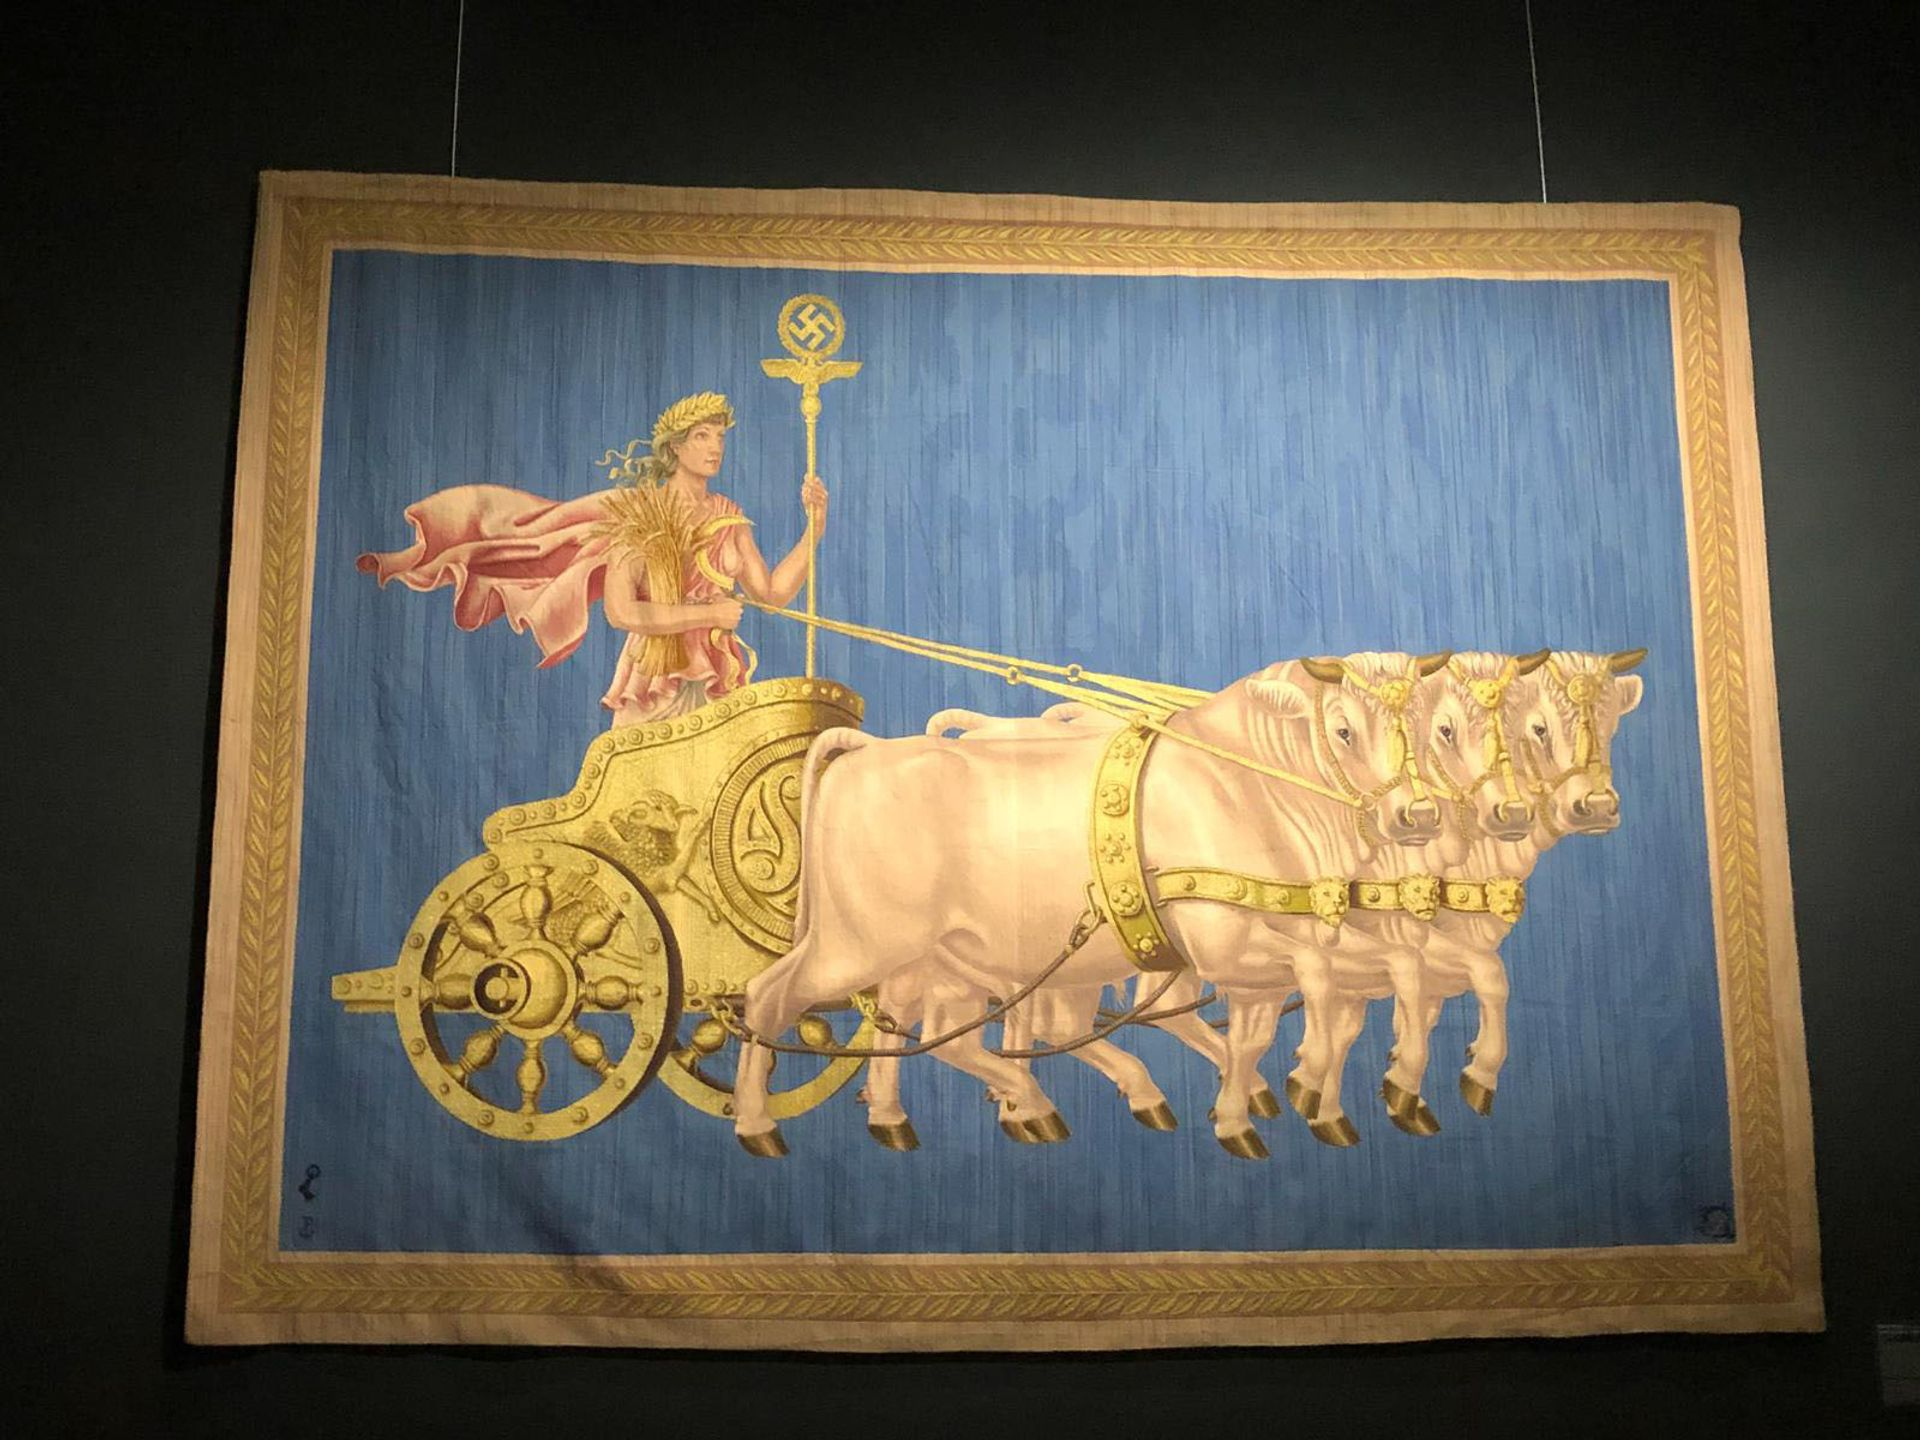 Werner Peiner's tapestry Die Fruchtbarkeit (Fertility), commissioned for the official residence of the Nazi Foreign Minister Joachim von Ribbentrop in Berlin Giles MacDonogh